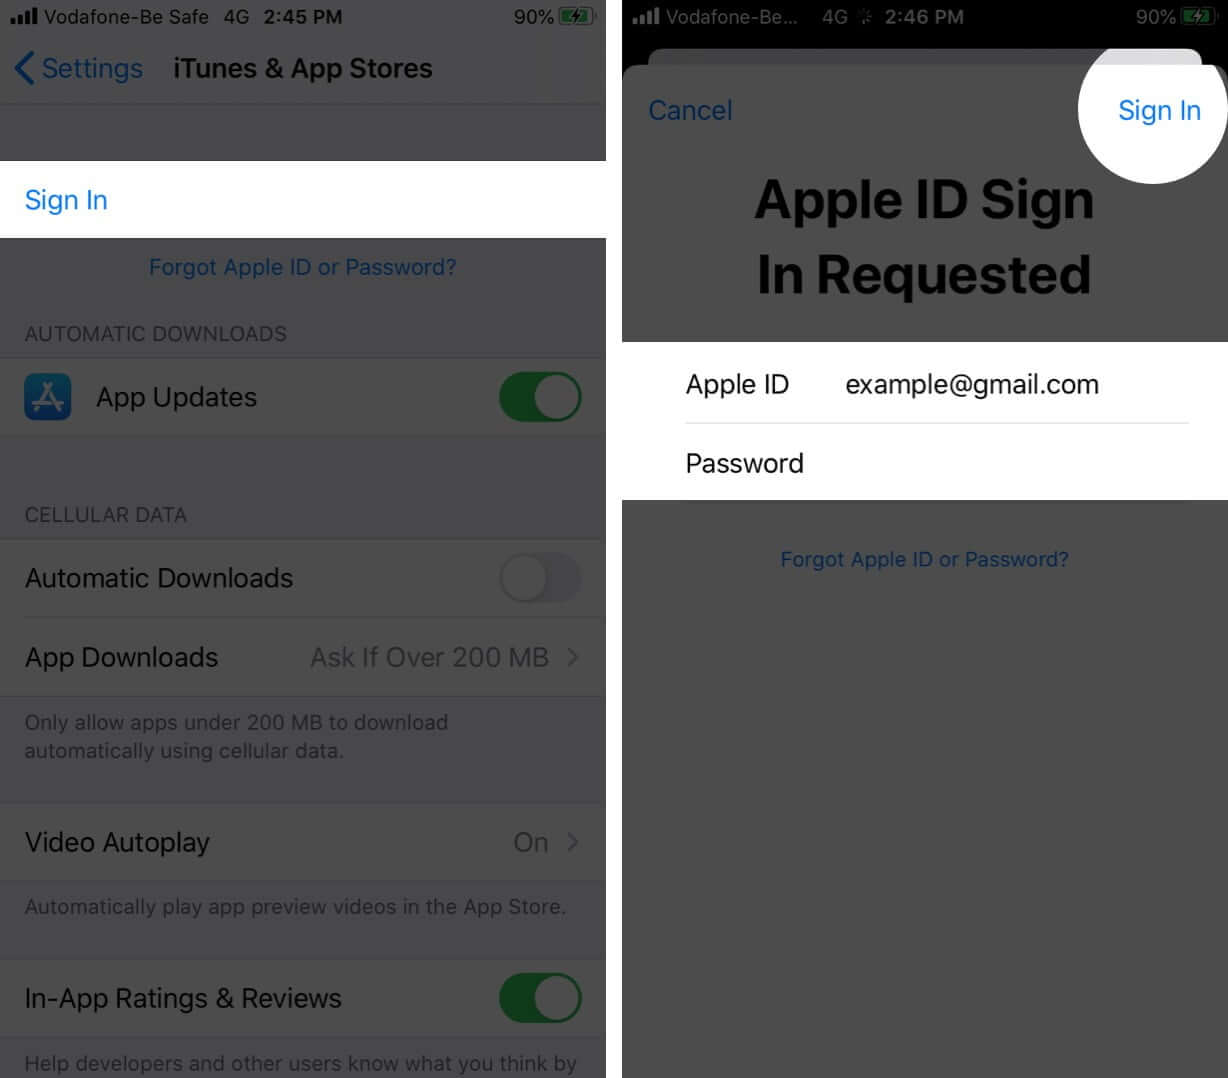 Use Apple ID and Password to Sign in App Store on iPhone